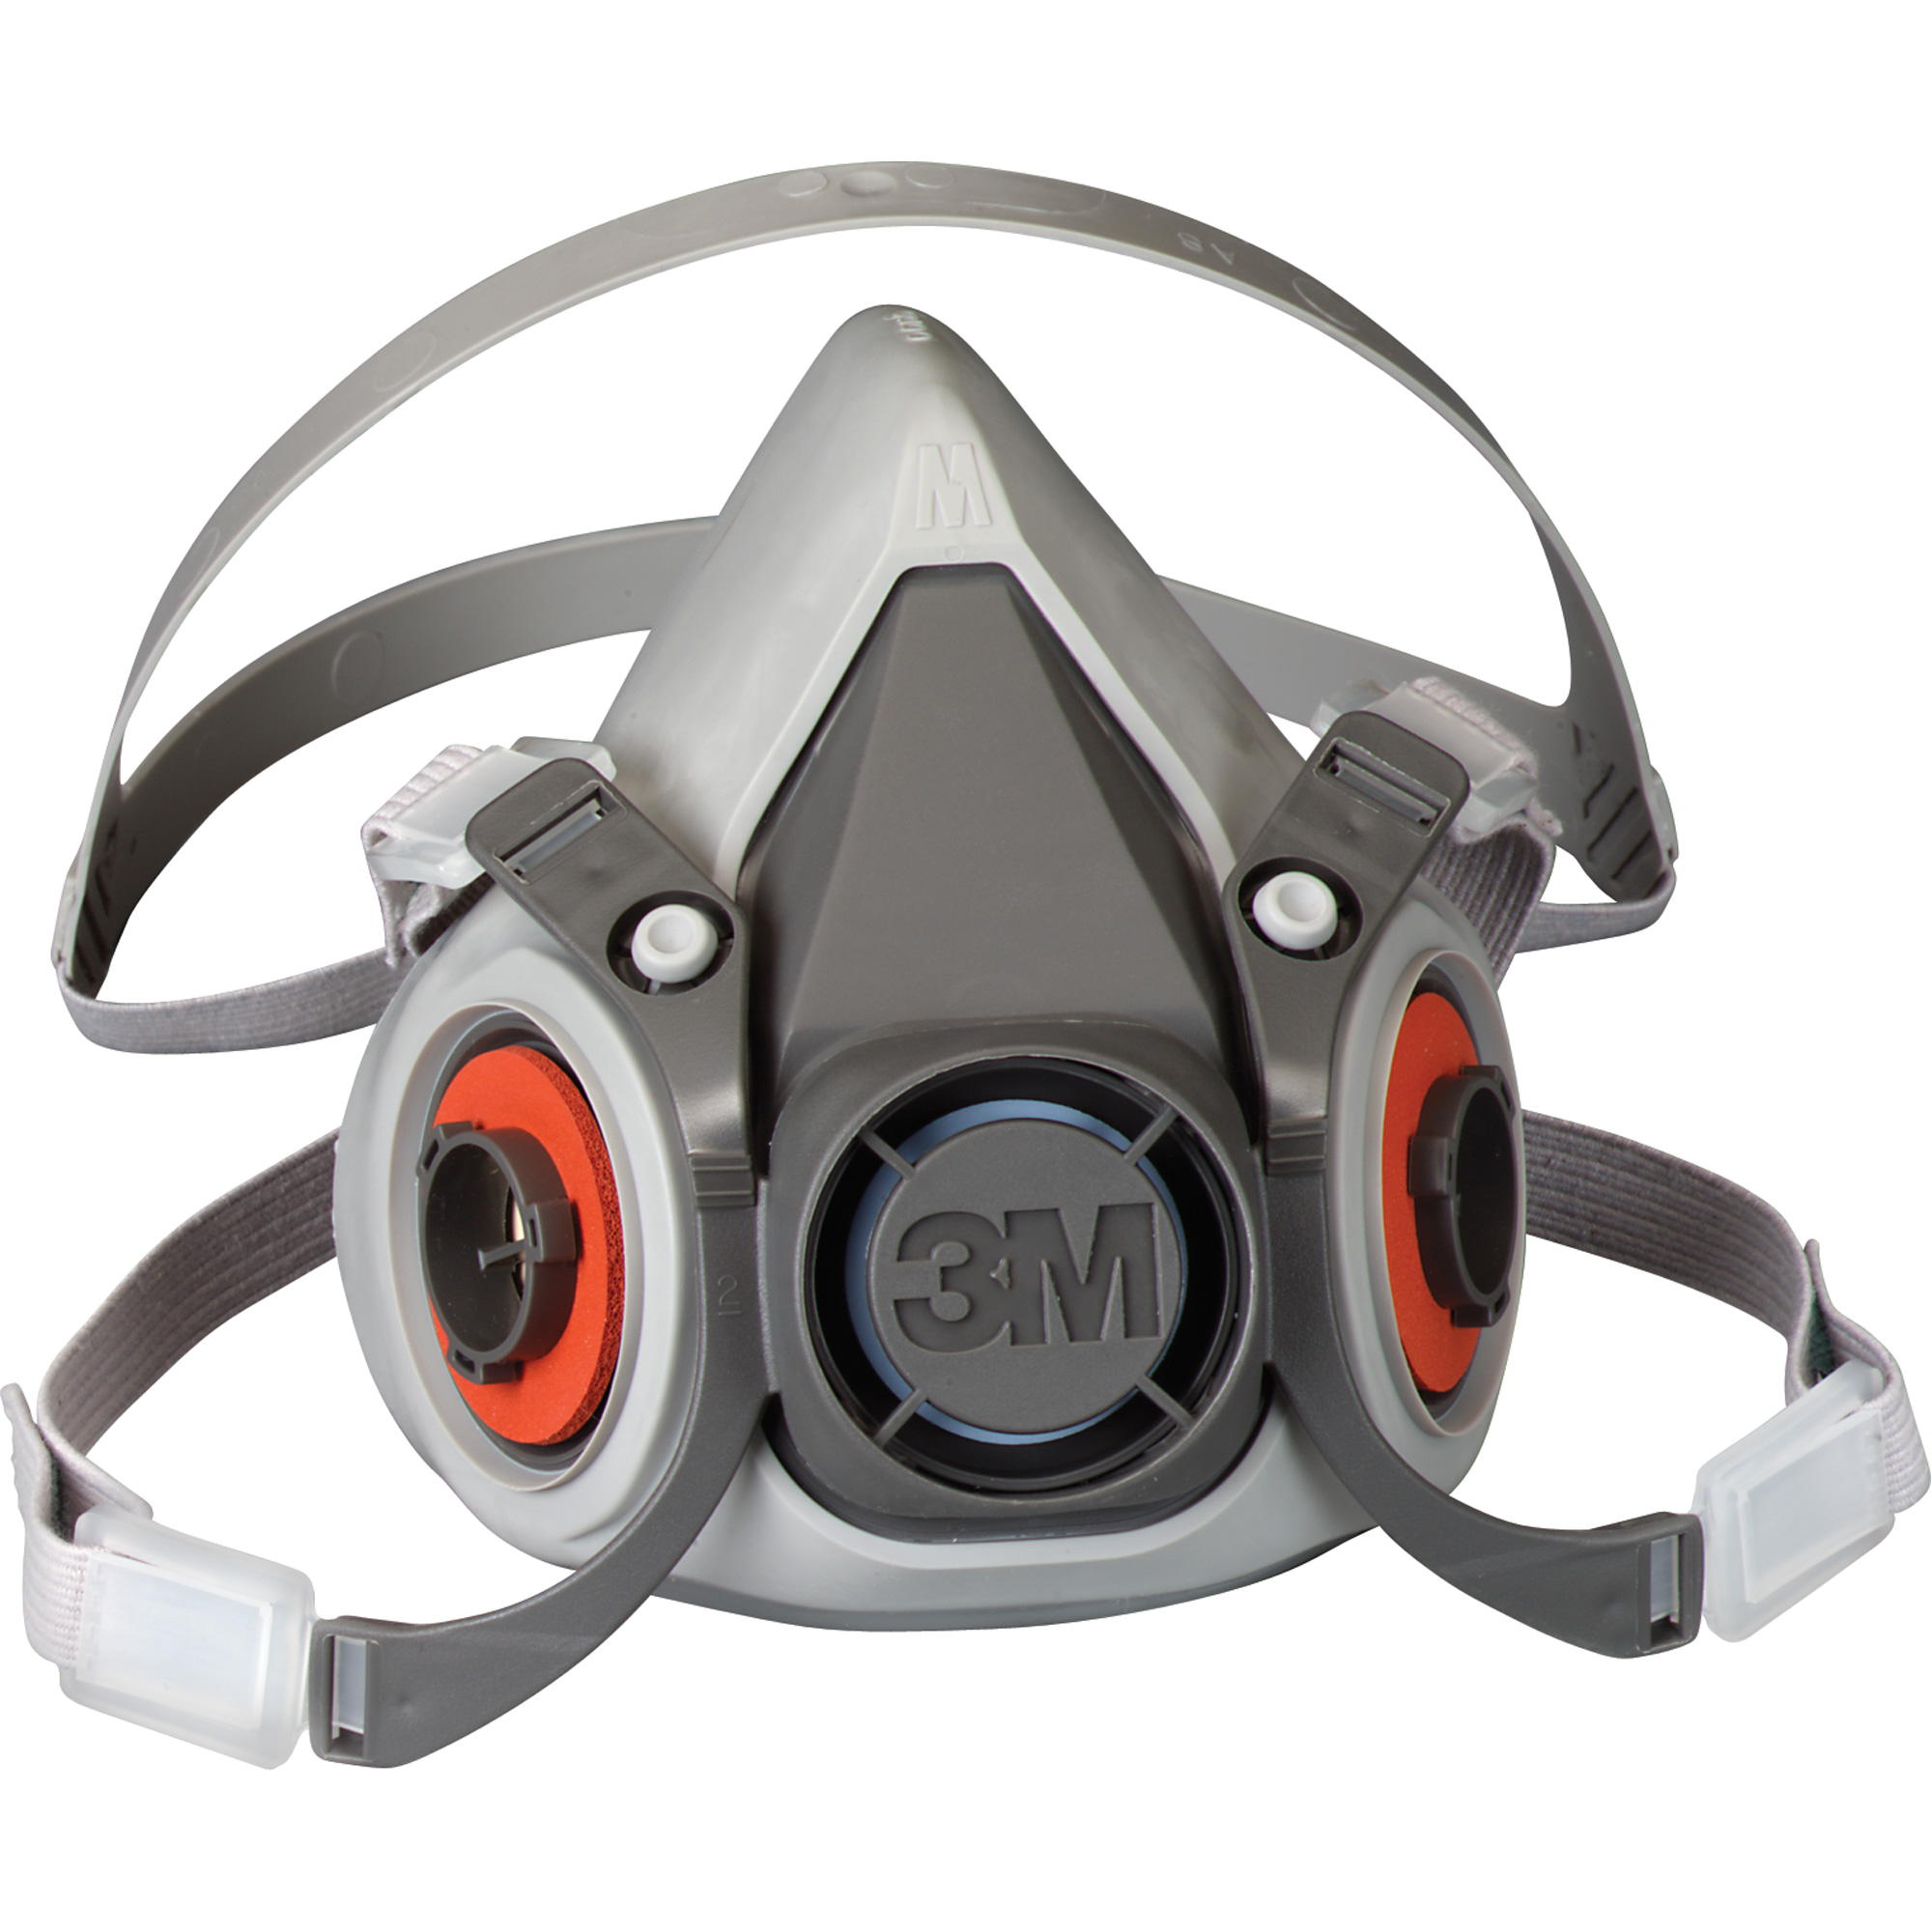 3M 6000 Series Half Facepiece Reusable Respirator Mask (Medium)